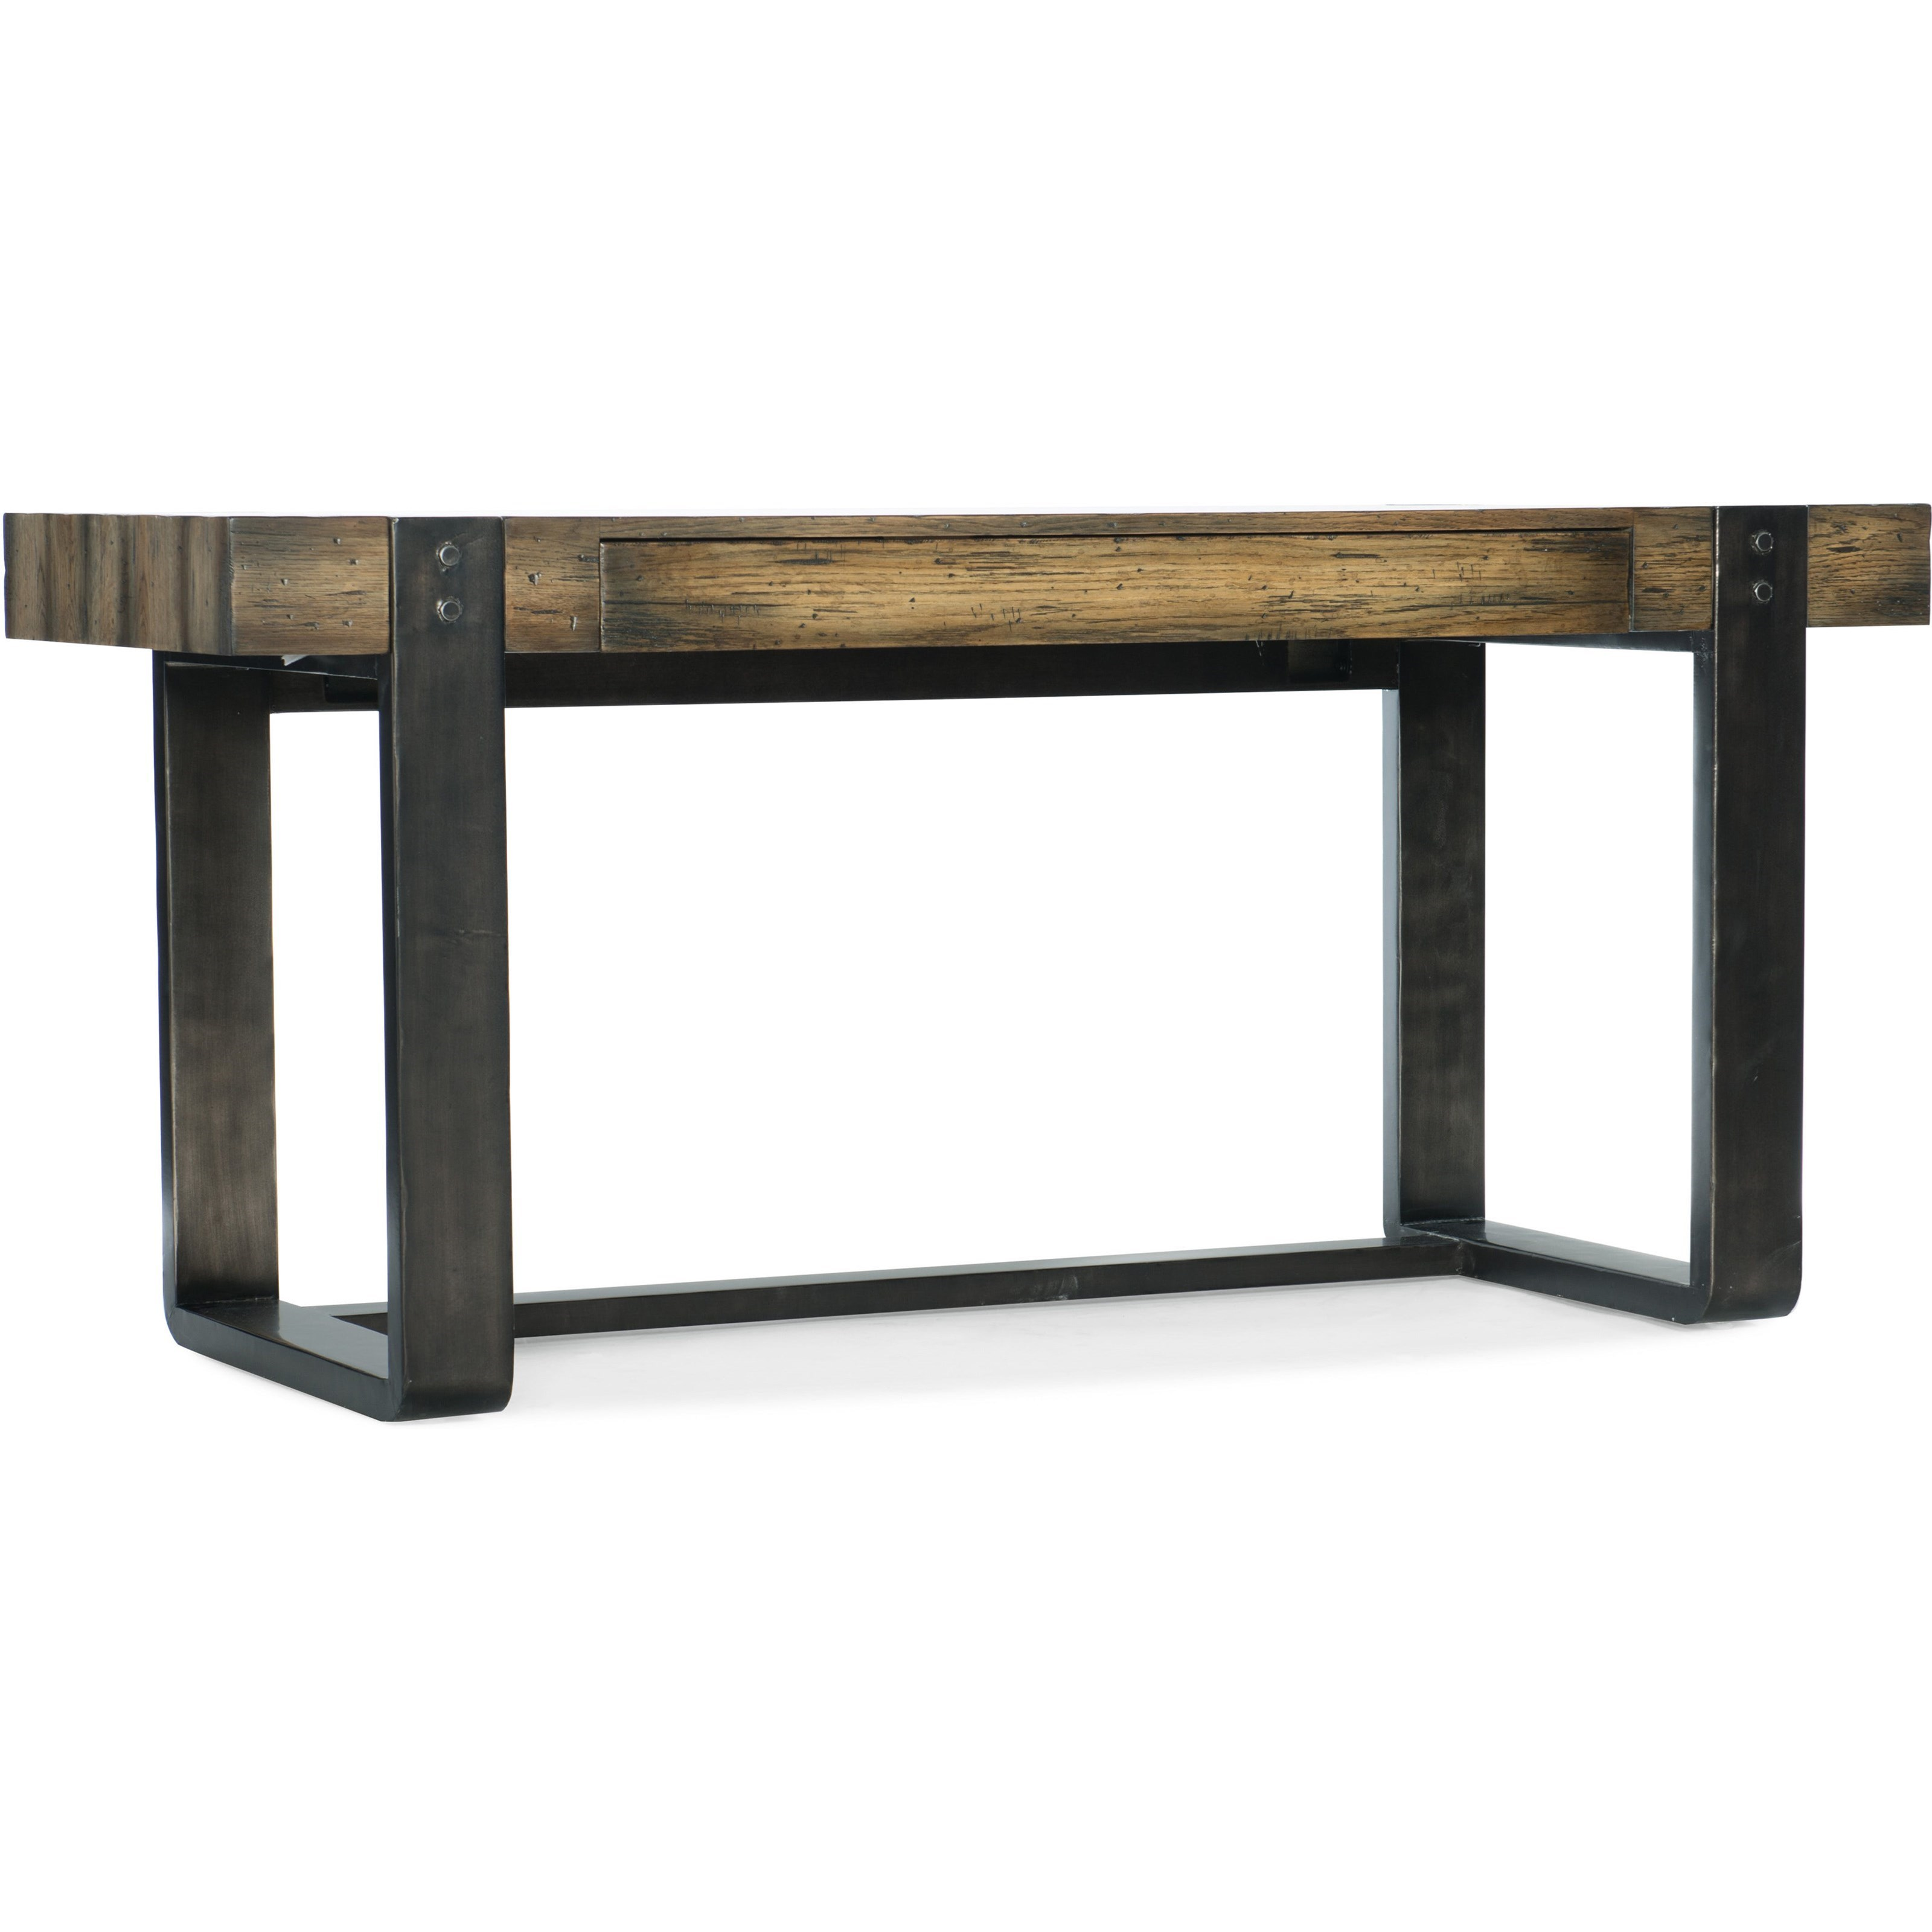 American Life-Crafted Leg Desk by Hamilton Home at Sprintz Furniture